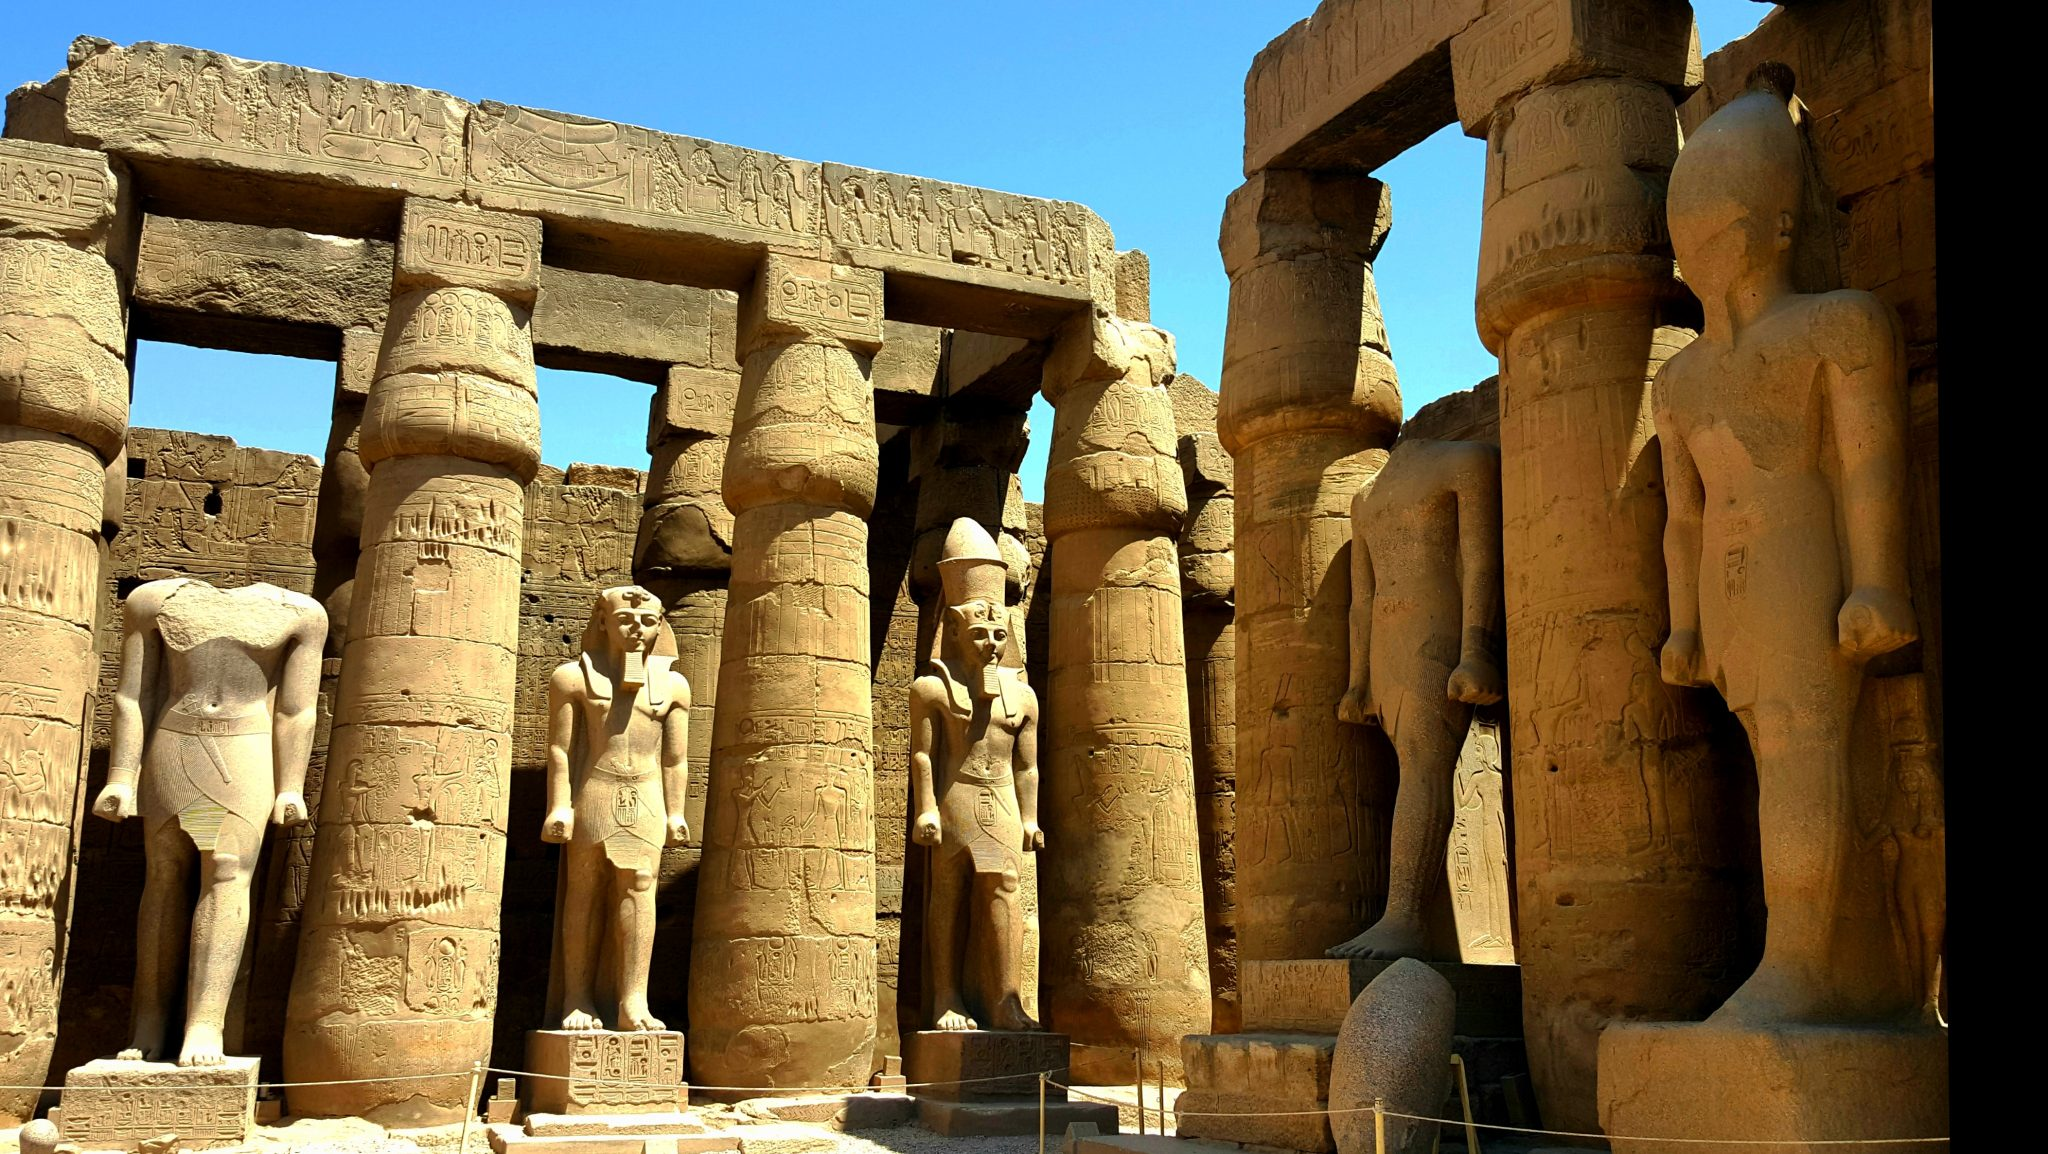 Luxor short vacations - luxor short breaks - luxor day trips